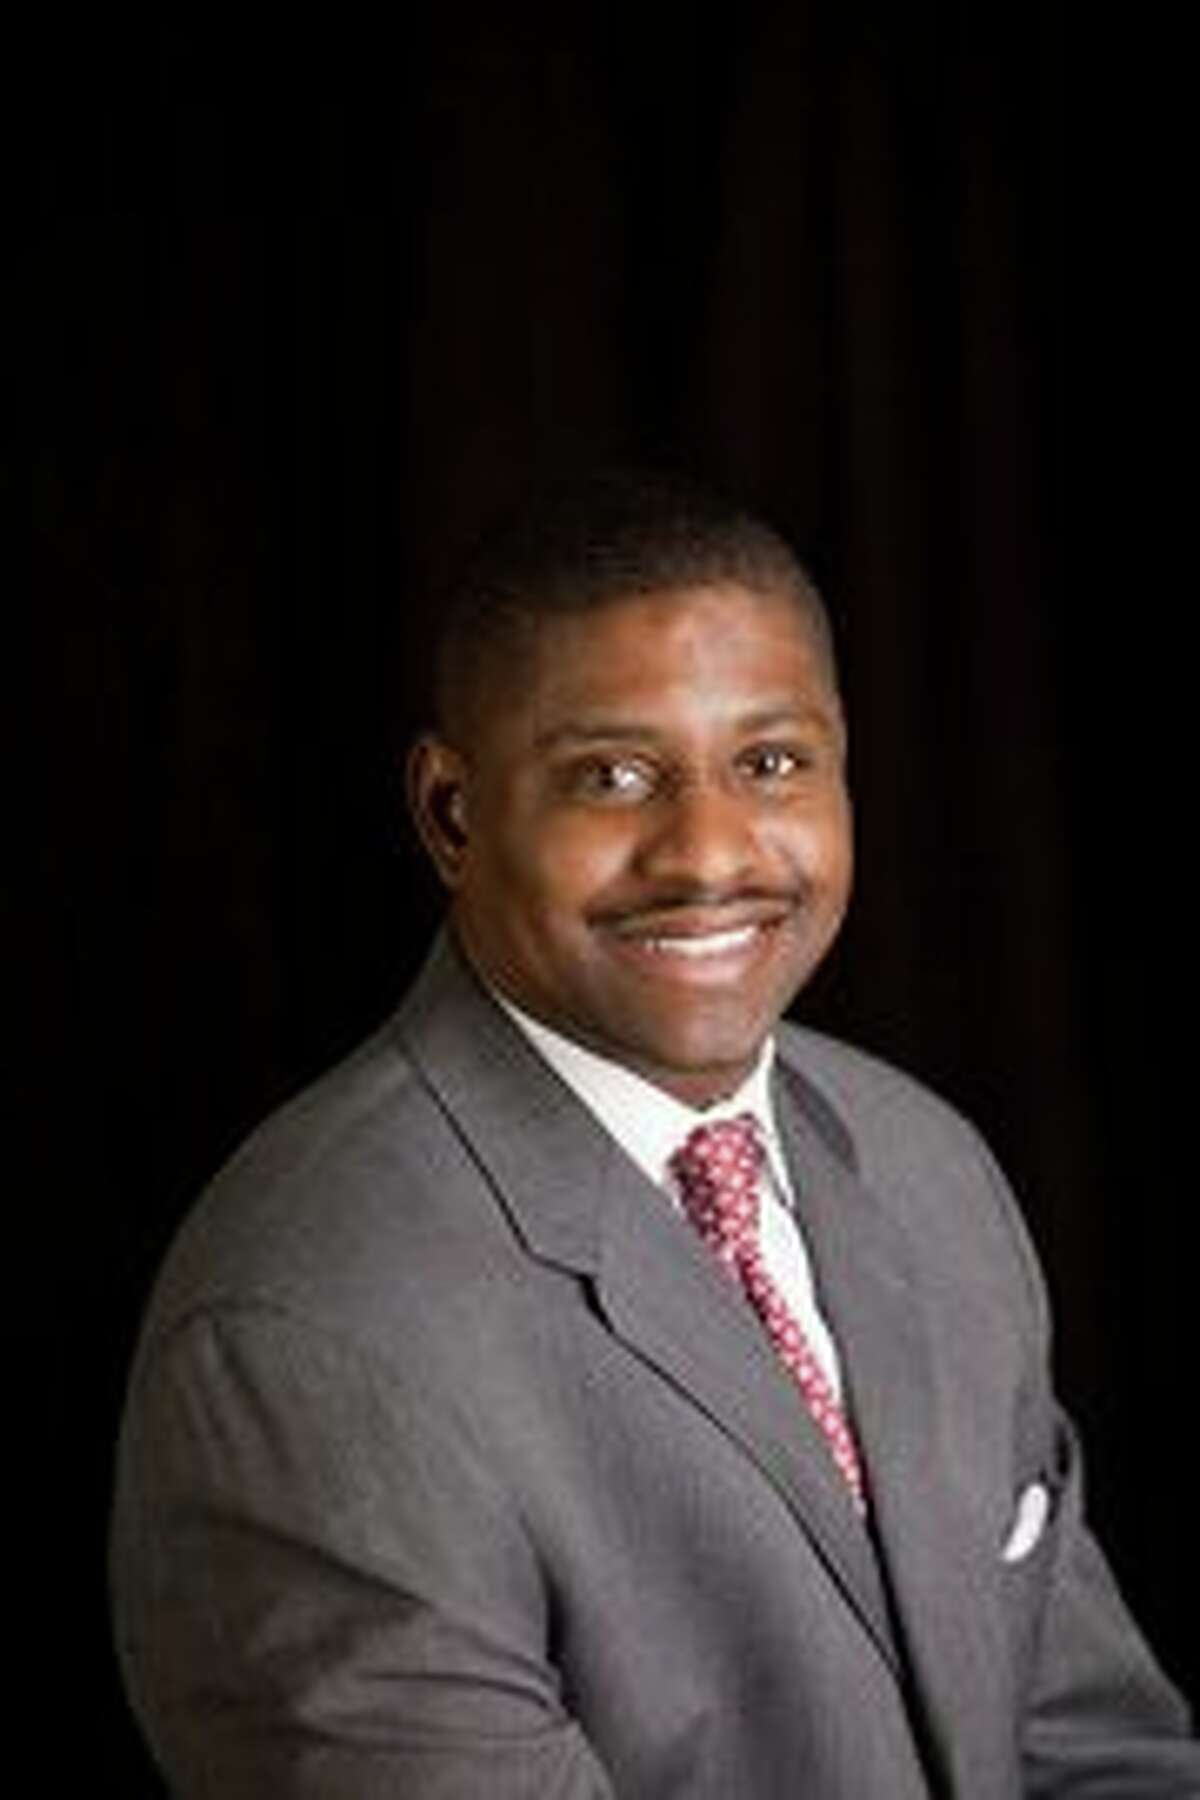 Steve Brown is the chairman of the Democratic Party in Fort Bend County.